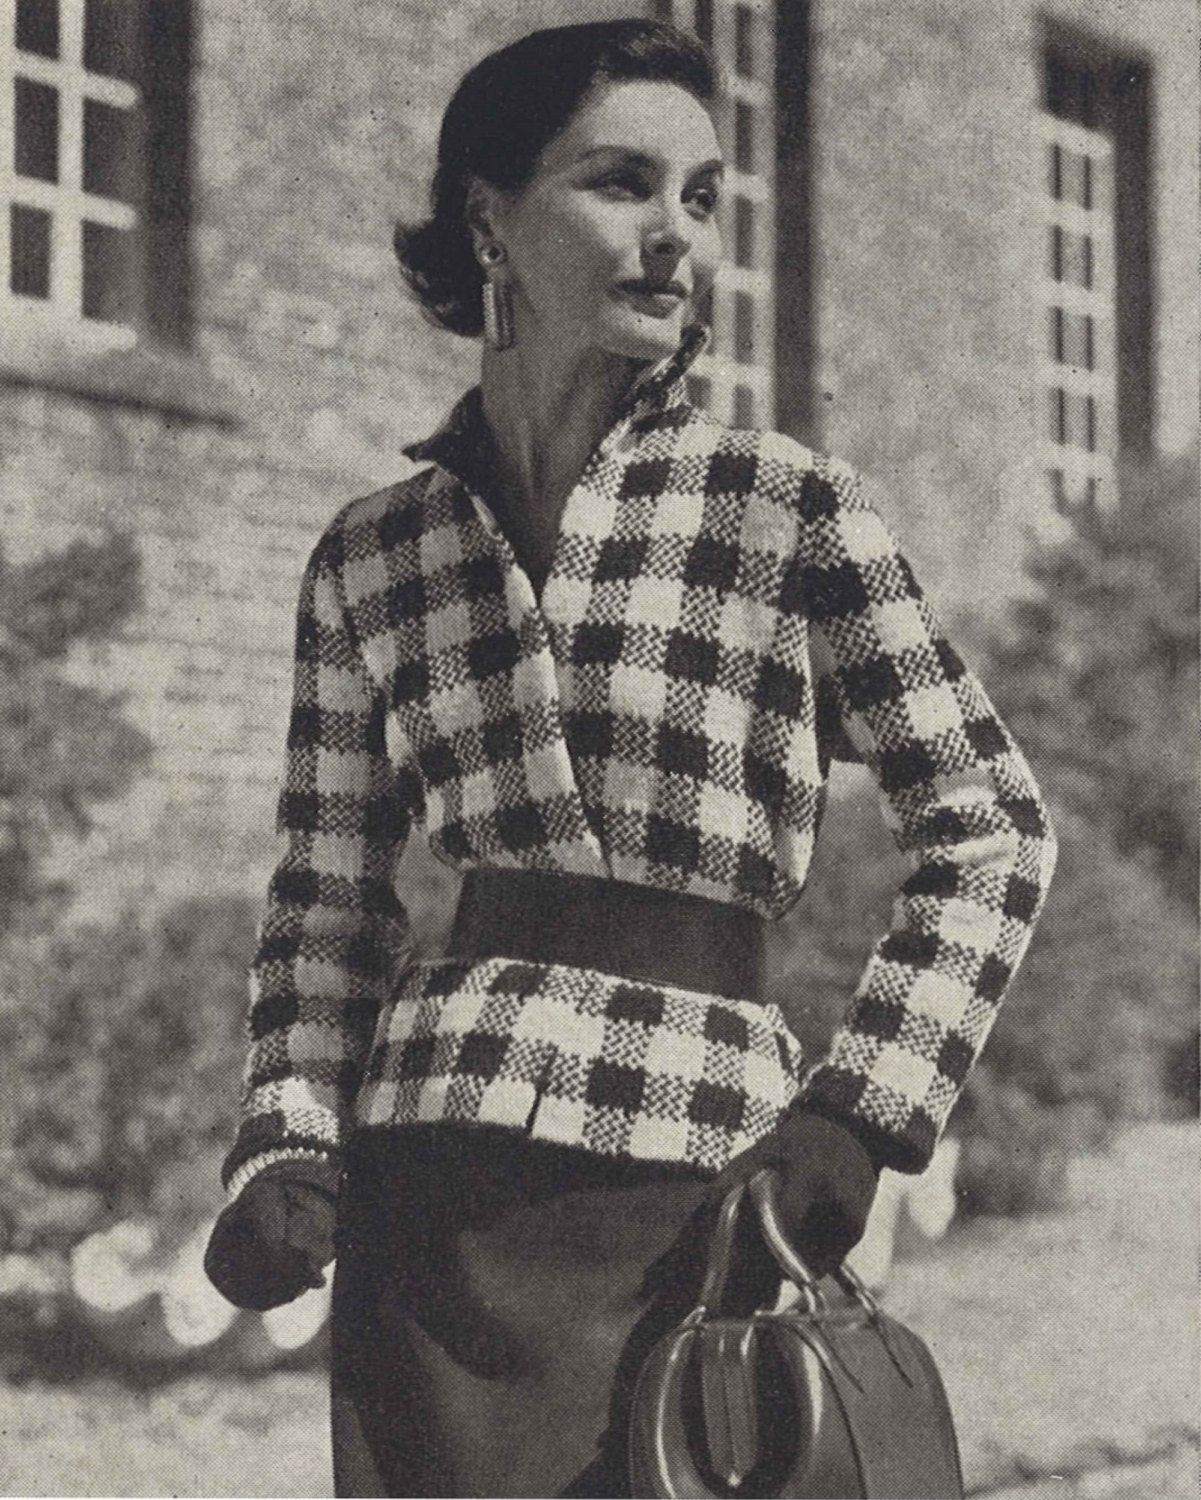 Orléans Jacket • 1950s Fall / Winter Checked Knitting Top Sweater ...